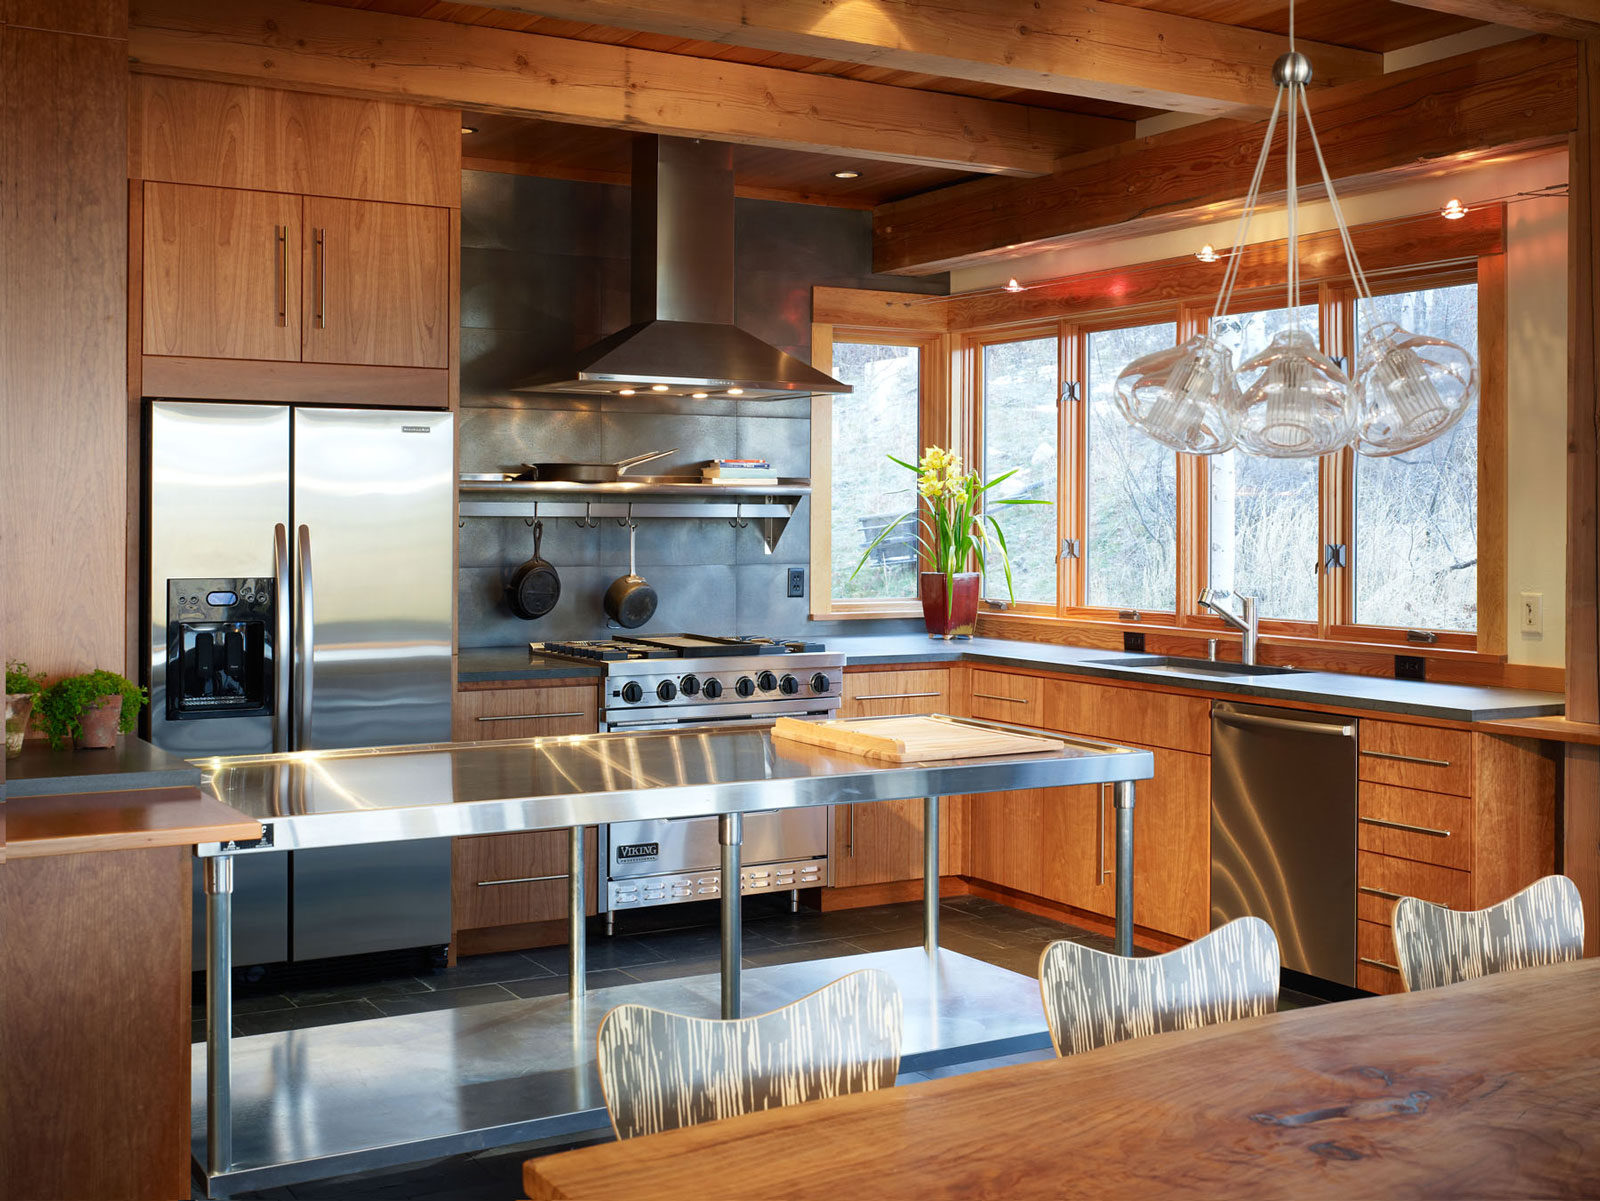 Stainless Steel Kitchen Tables in Interesting Kitchen with Wooden Counter and Cabinets